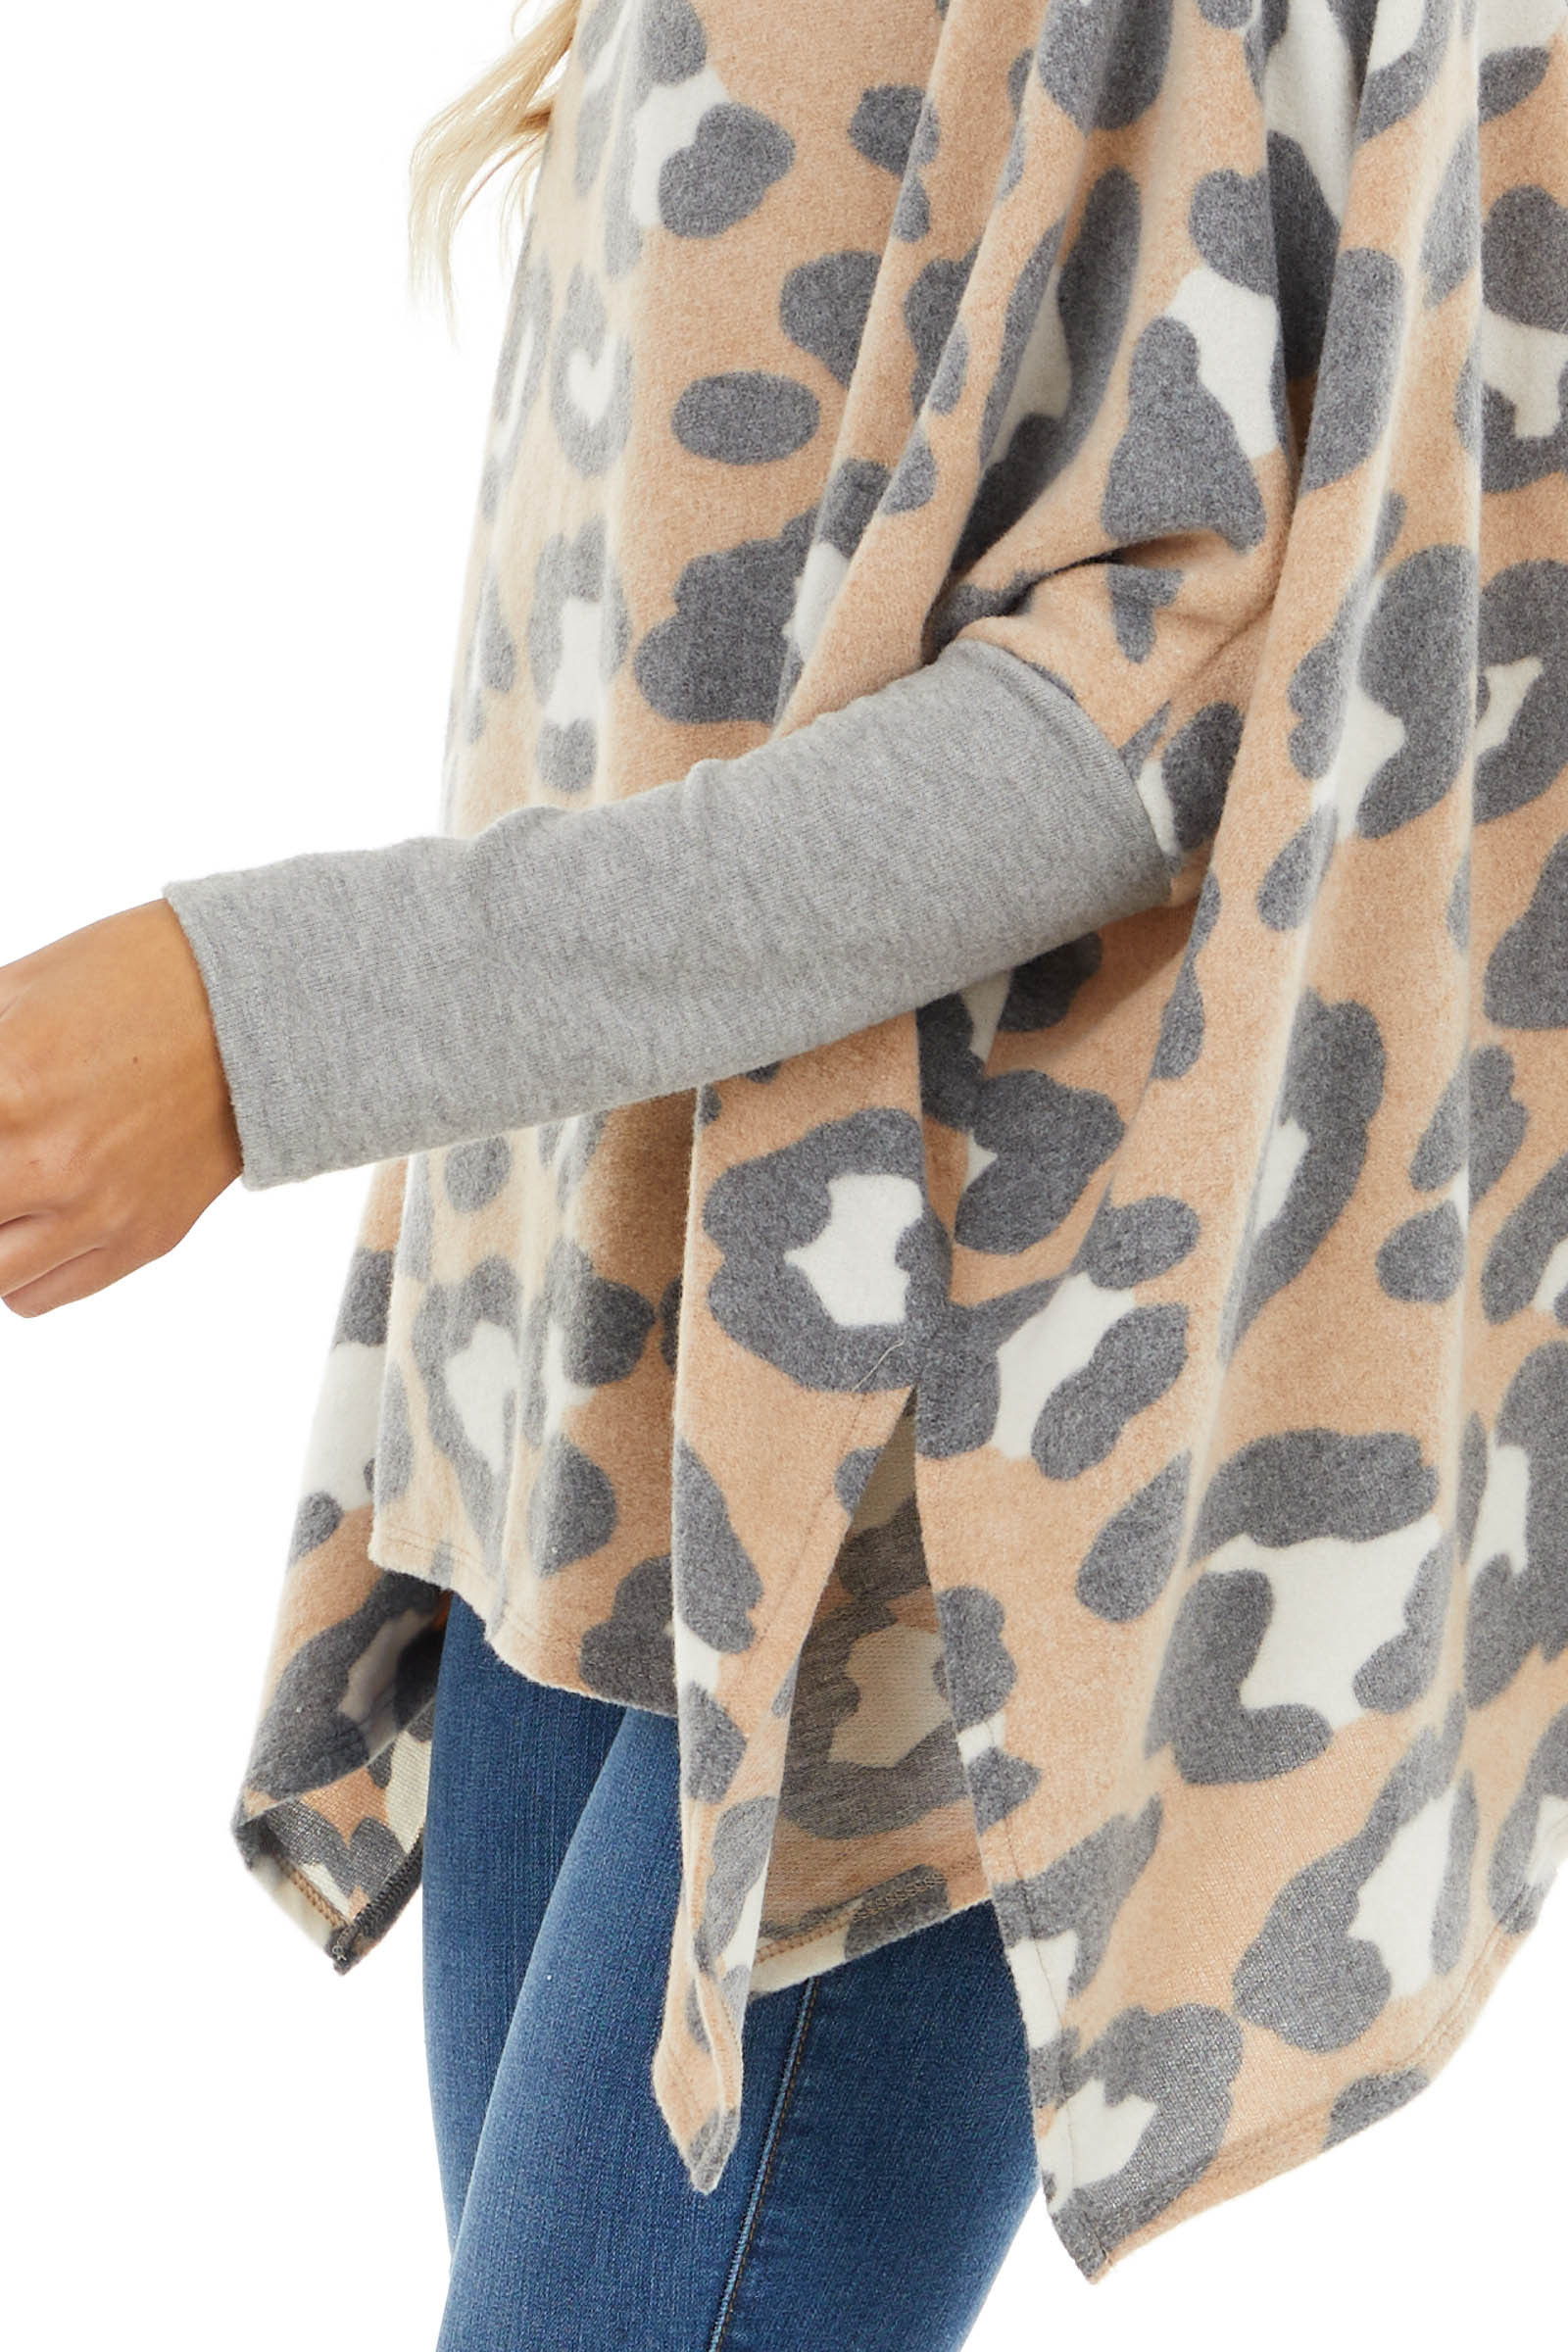 Dove and Beige Leopard Print Soft Knit Poncho Sweater